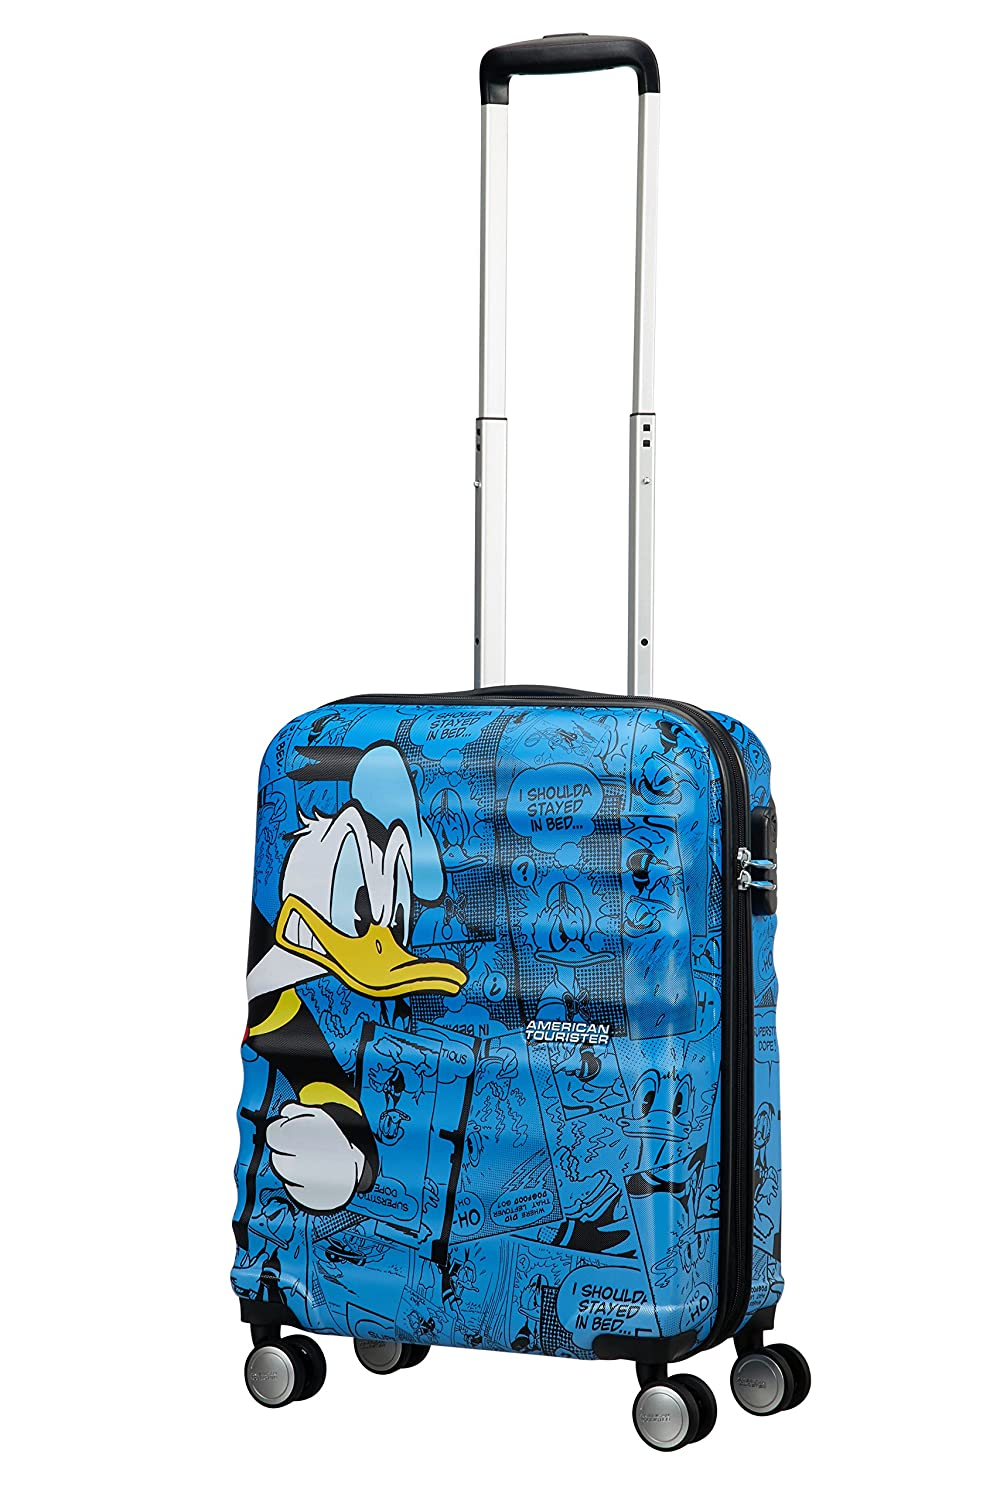 Multicolour Disney Wavebreaker 55 cm 85667//5278 36 liters American Tourister Spinner 55//20 Hand Luggage Donald Duck